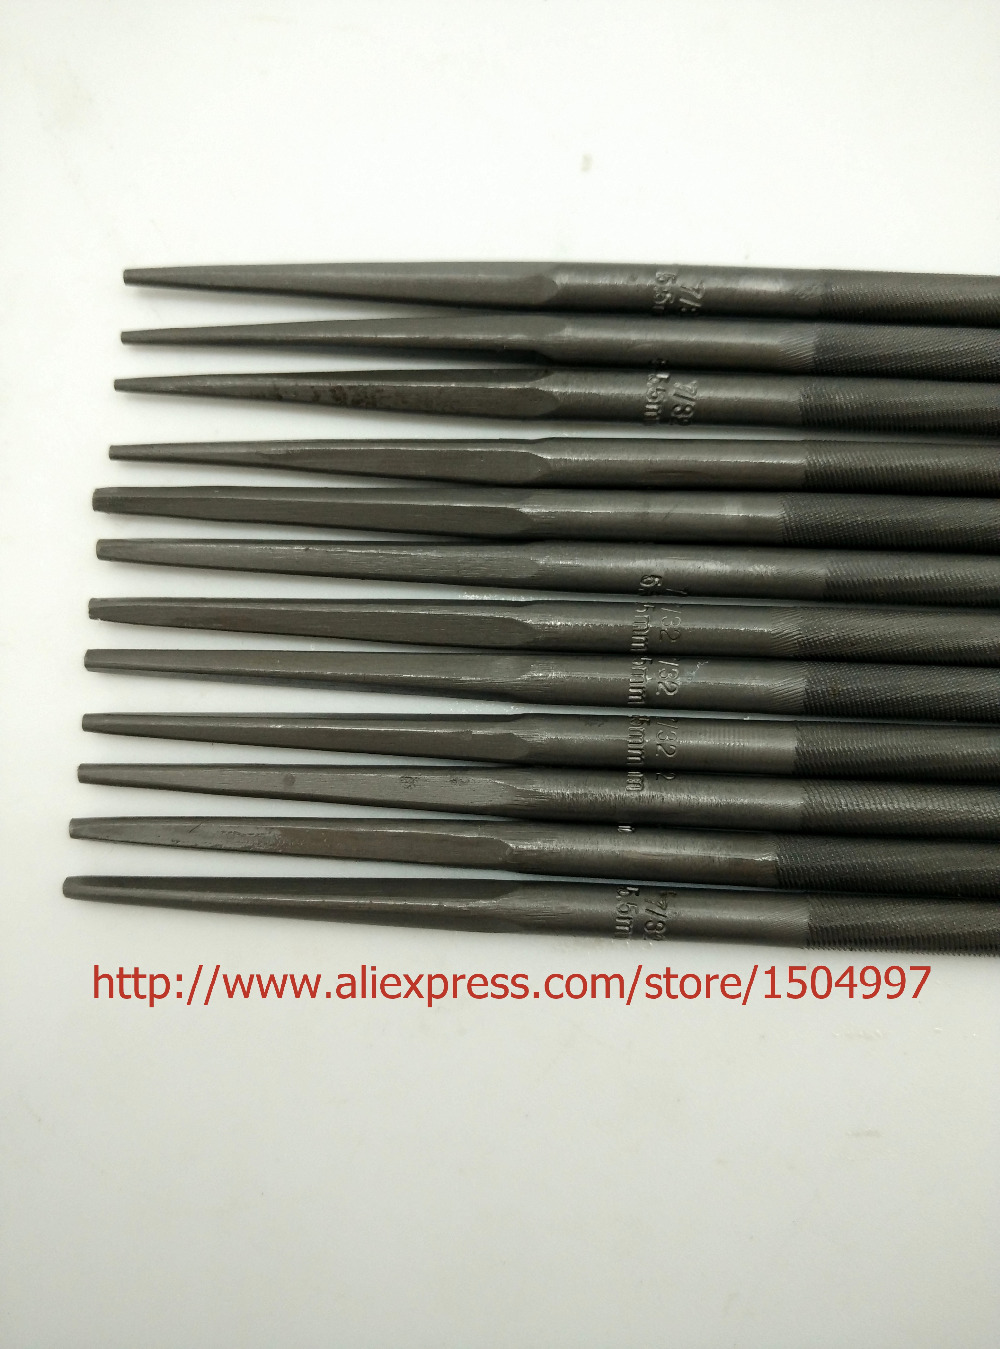 """3PCS #76060 MADE IN JAPAN  CHAINSAW FILES 7/32""""  5.5MM FOR SHARPENING ALL BRANDS CHAINS SAW SHARPENER"""